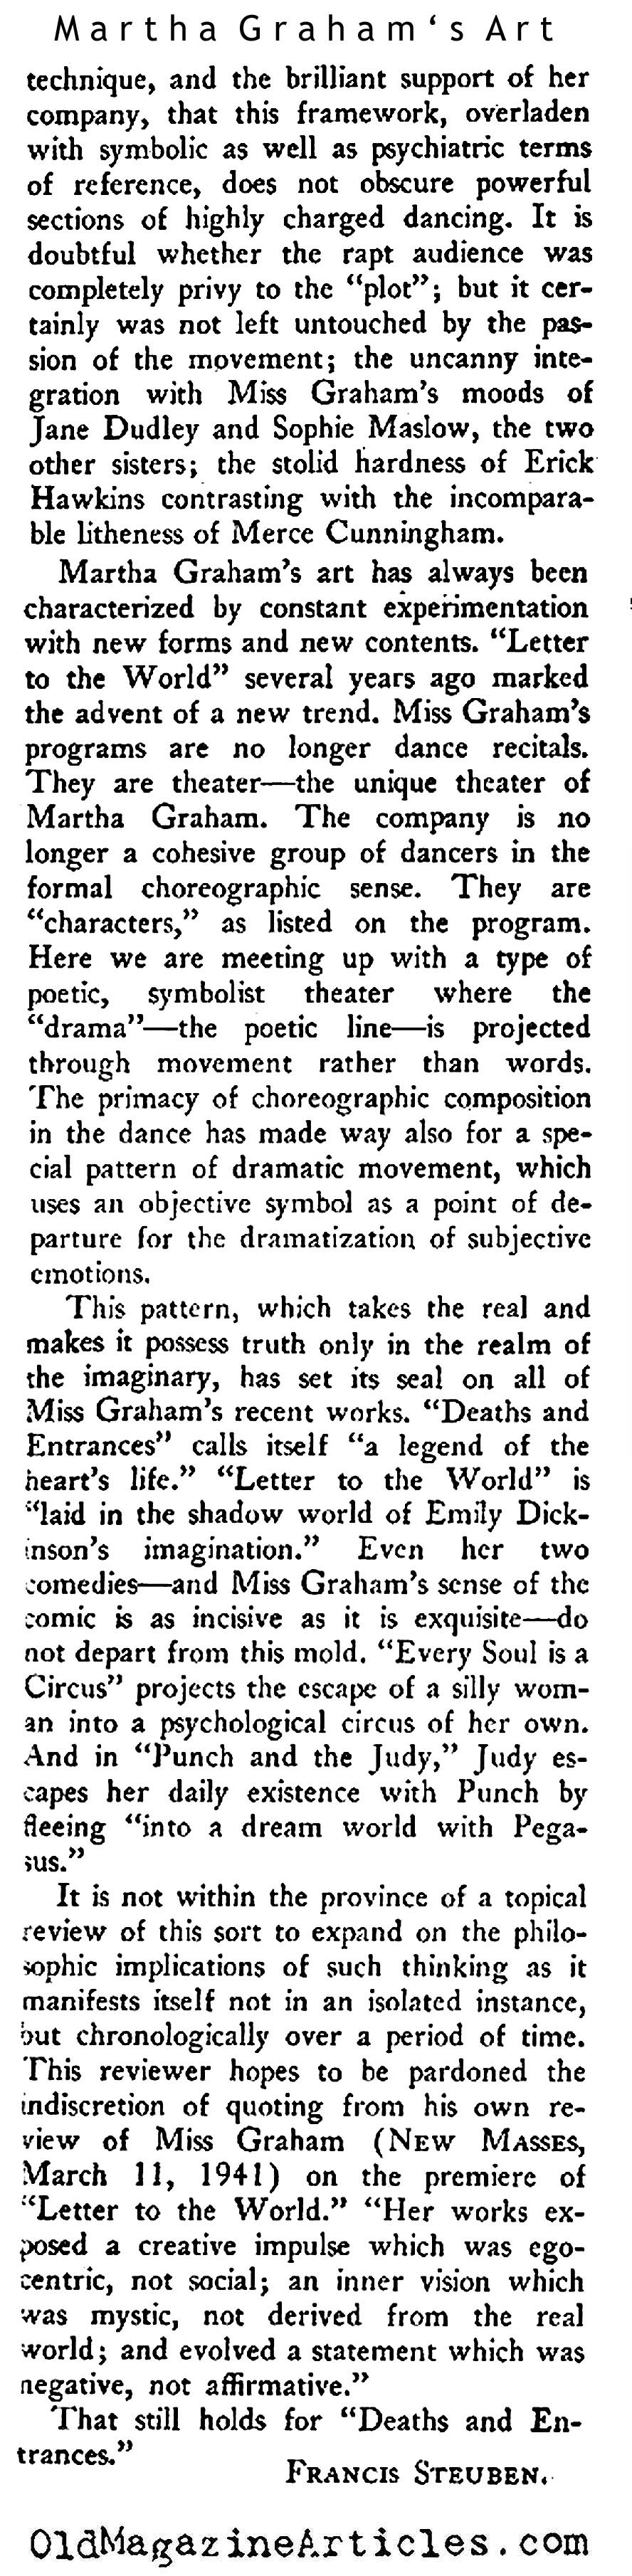 Martha Graham's Art (New Masses, 1944)